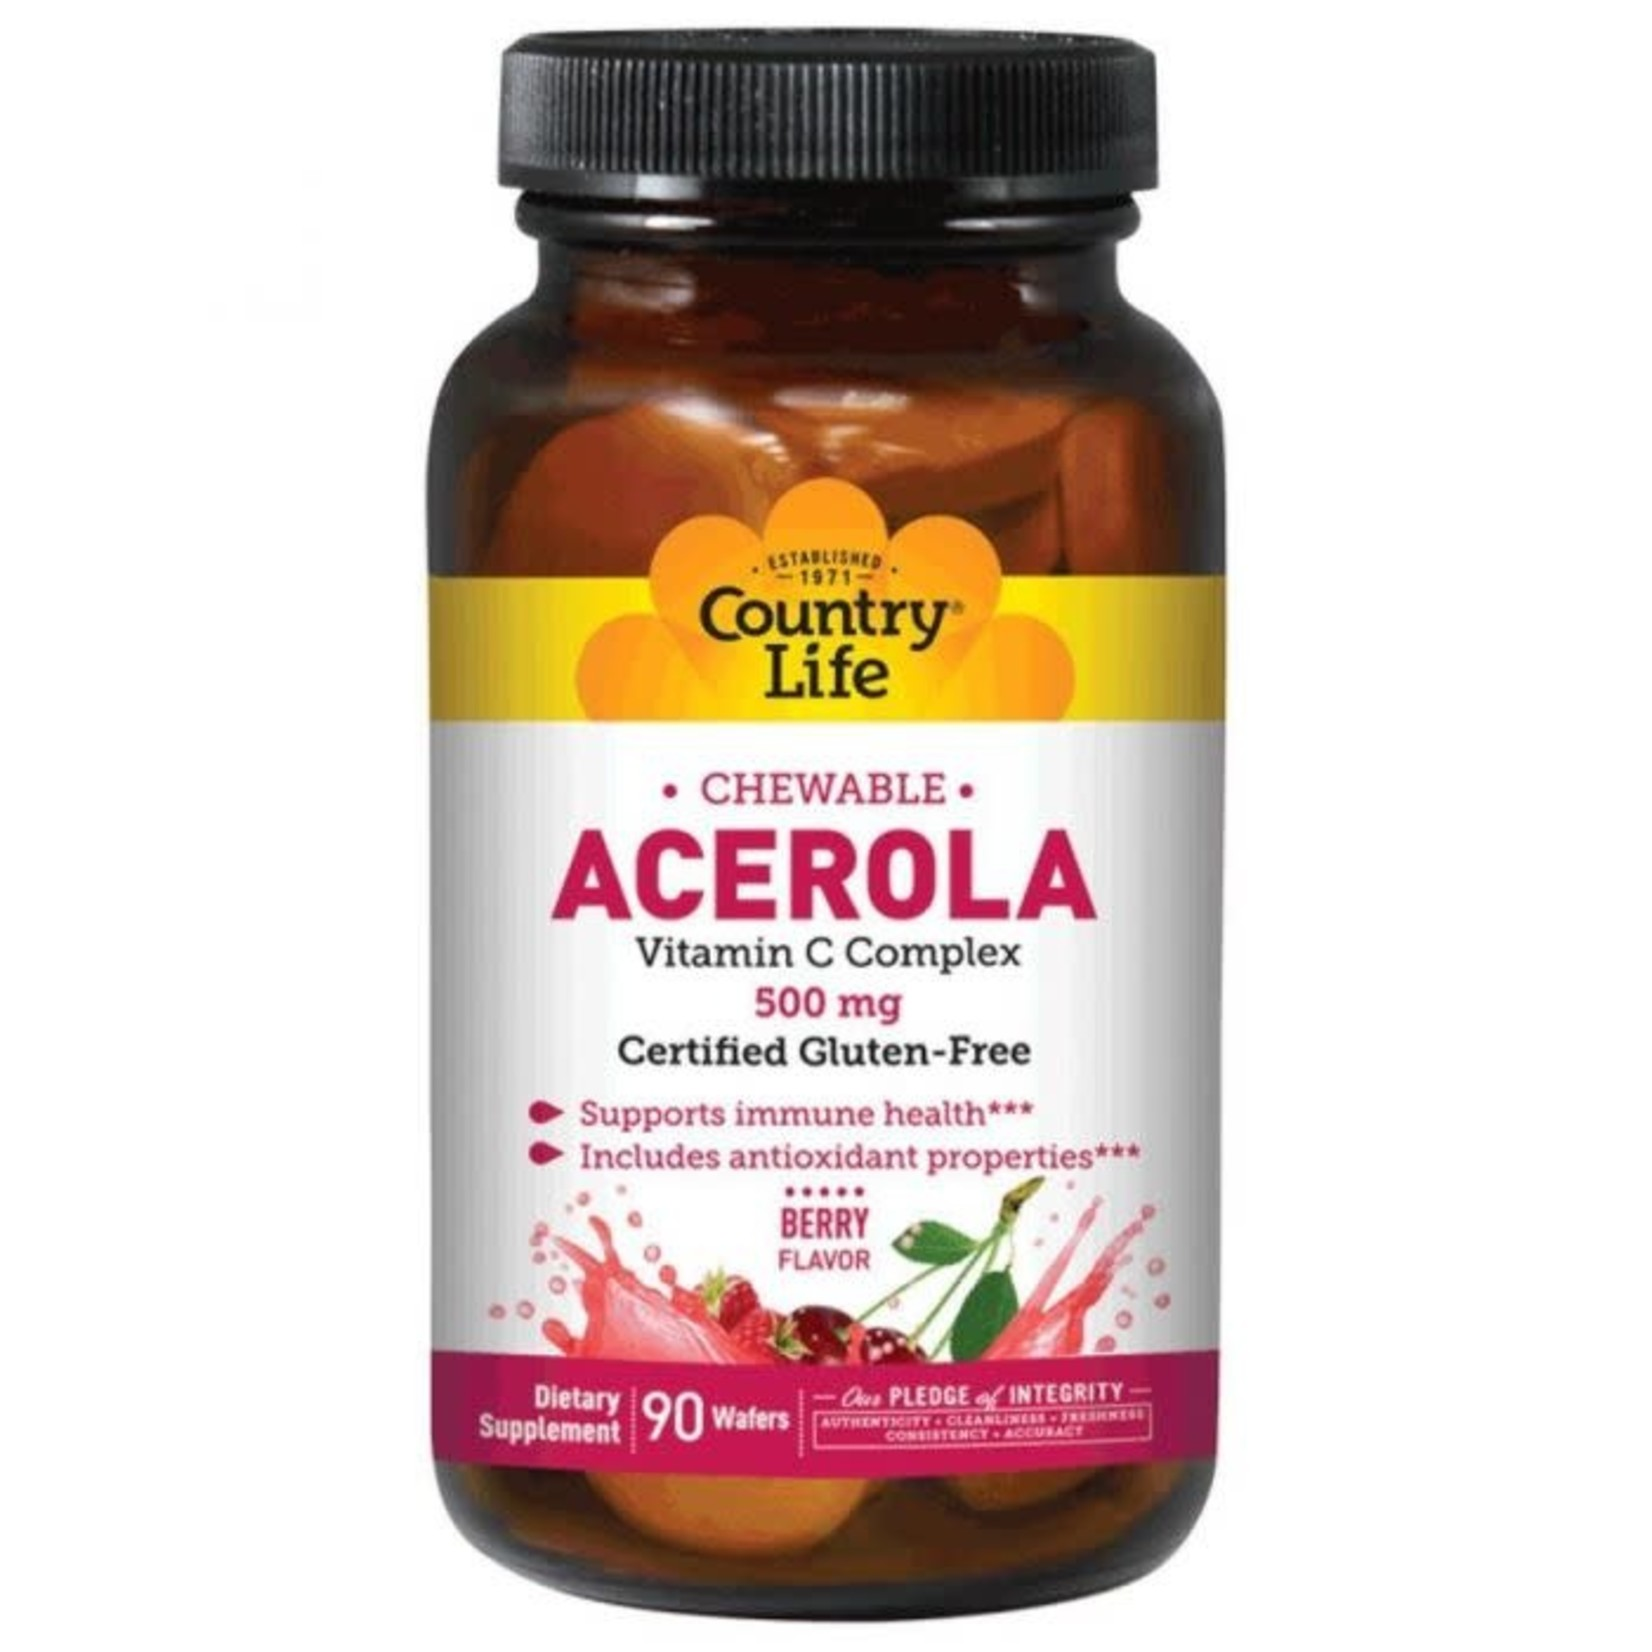 Country Life Country Life Acerola Chewable Vitamin C 500mg 90 Wafers